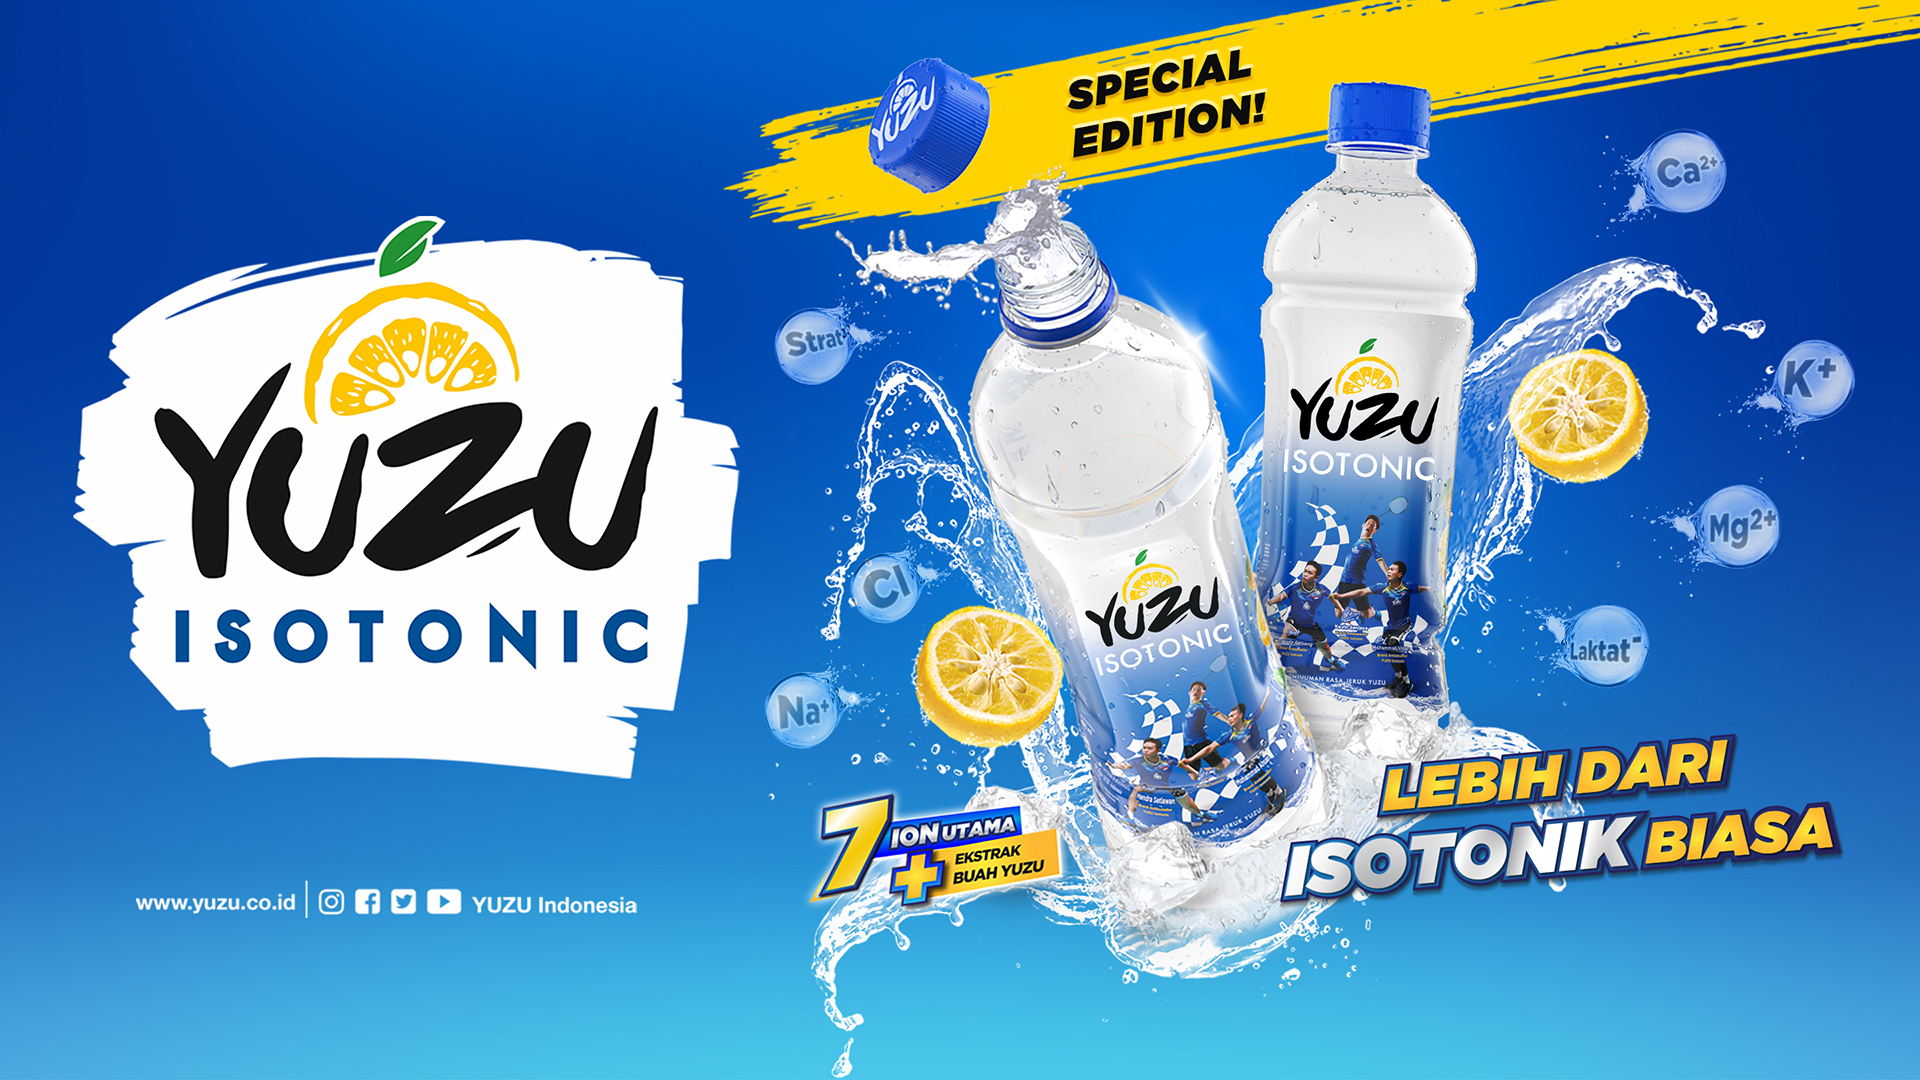 Yuzu Isotonic New Pack